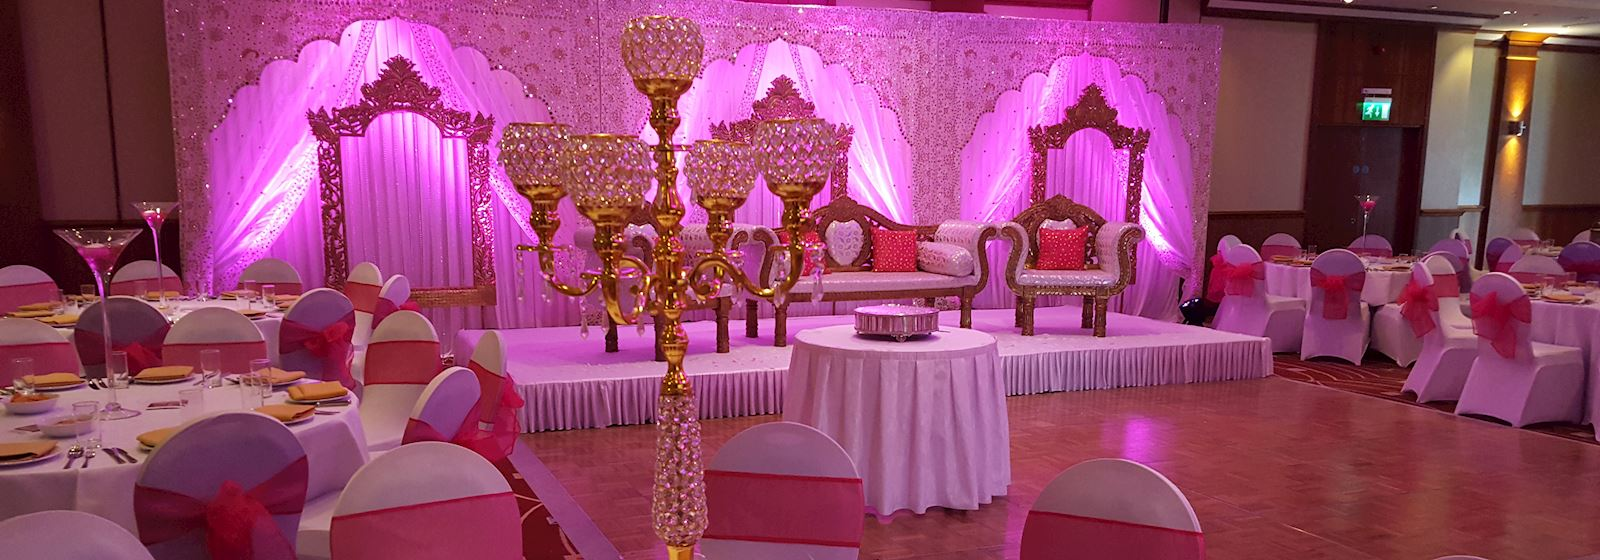 wedding party function rooms newcastle